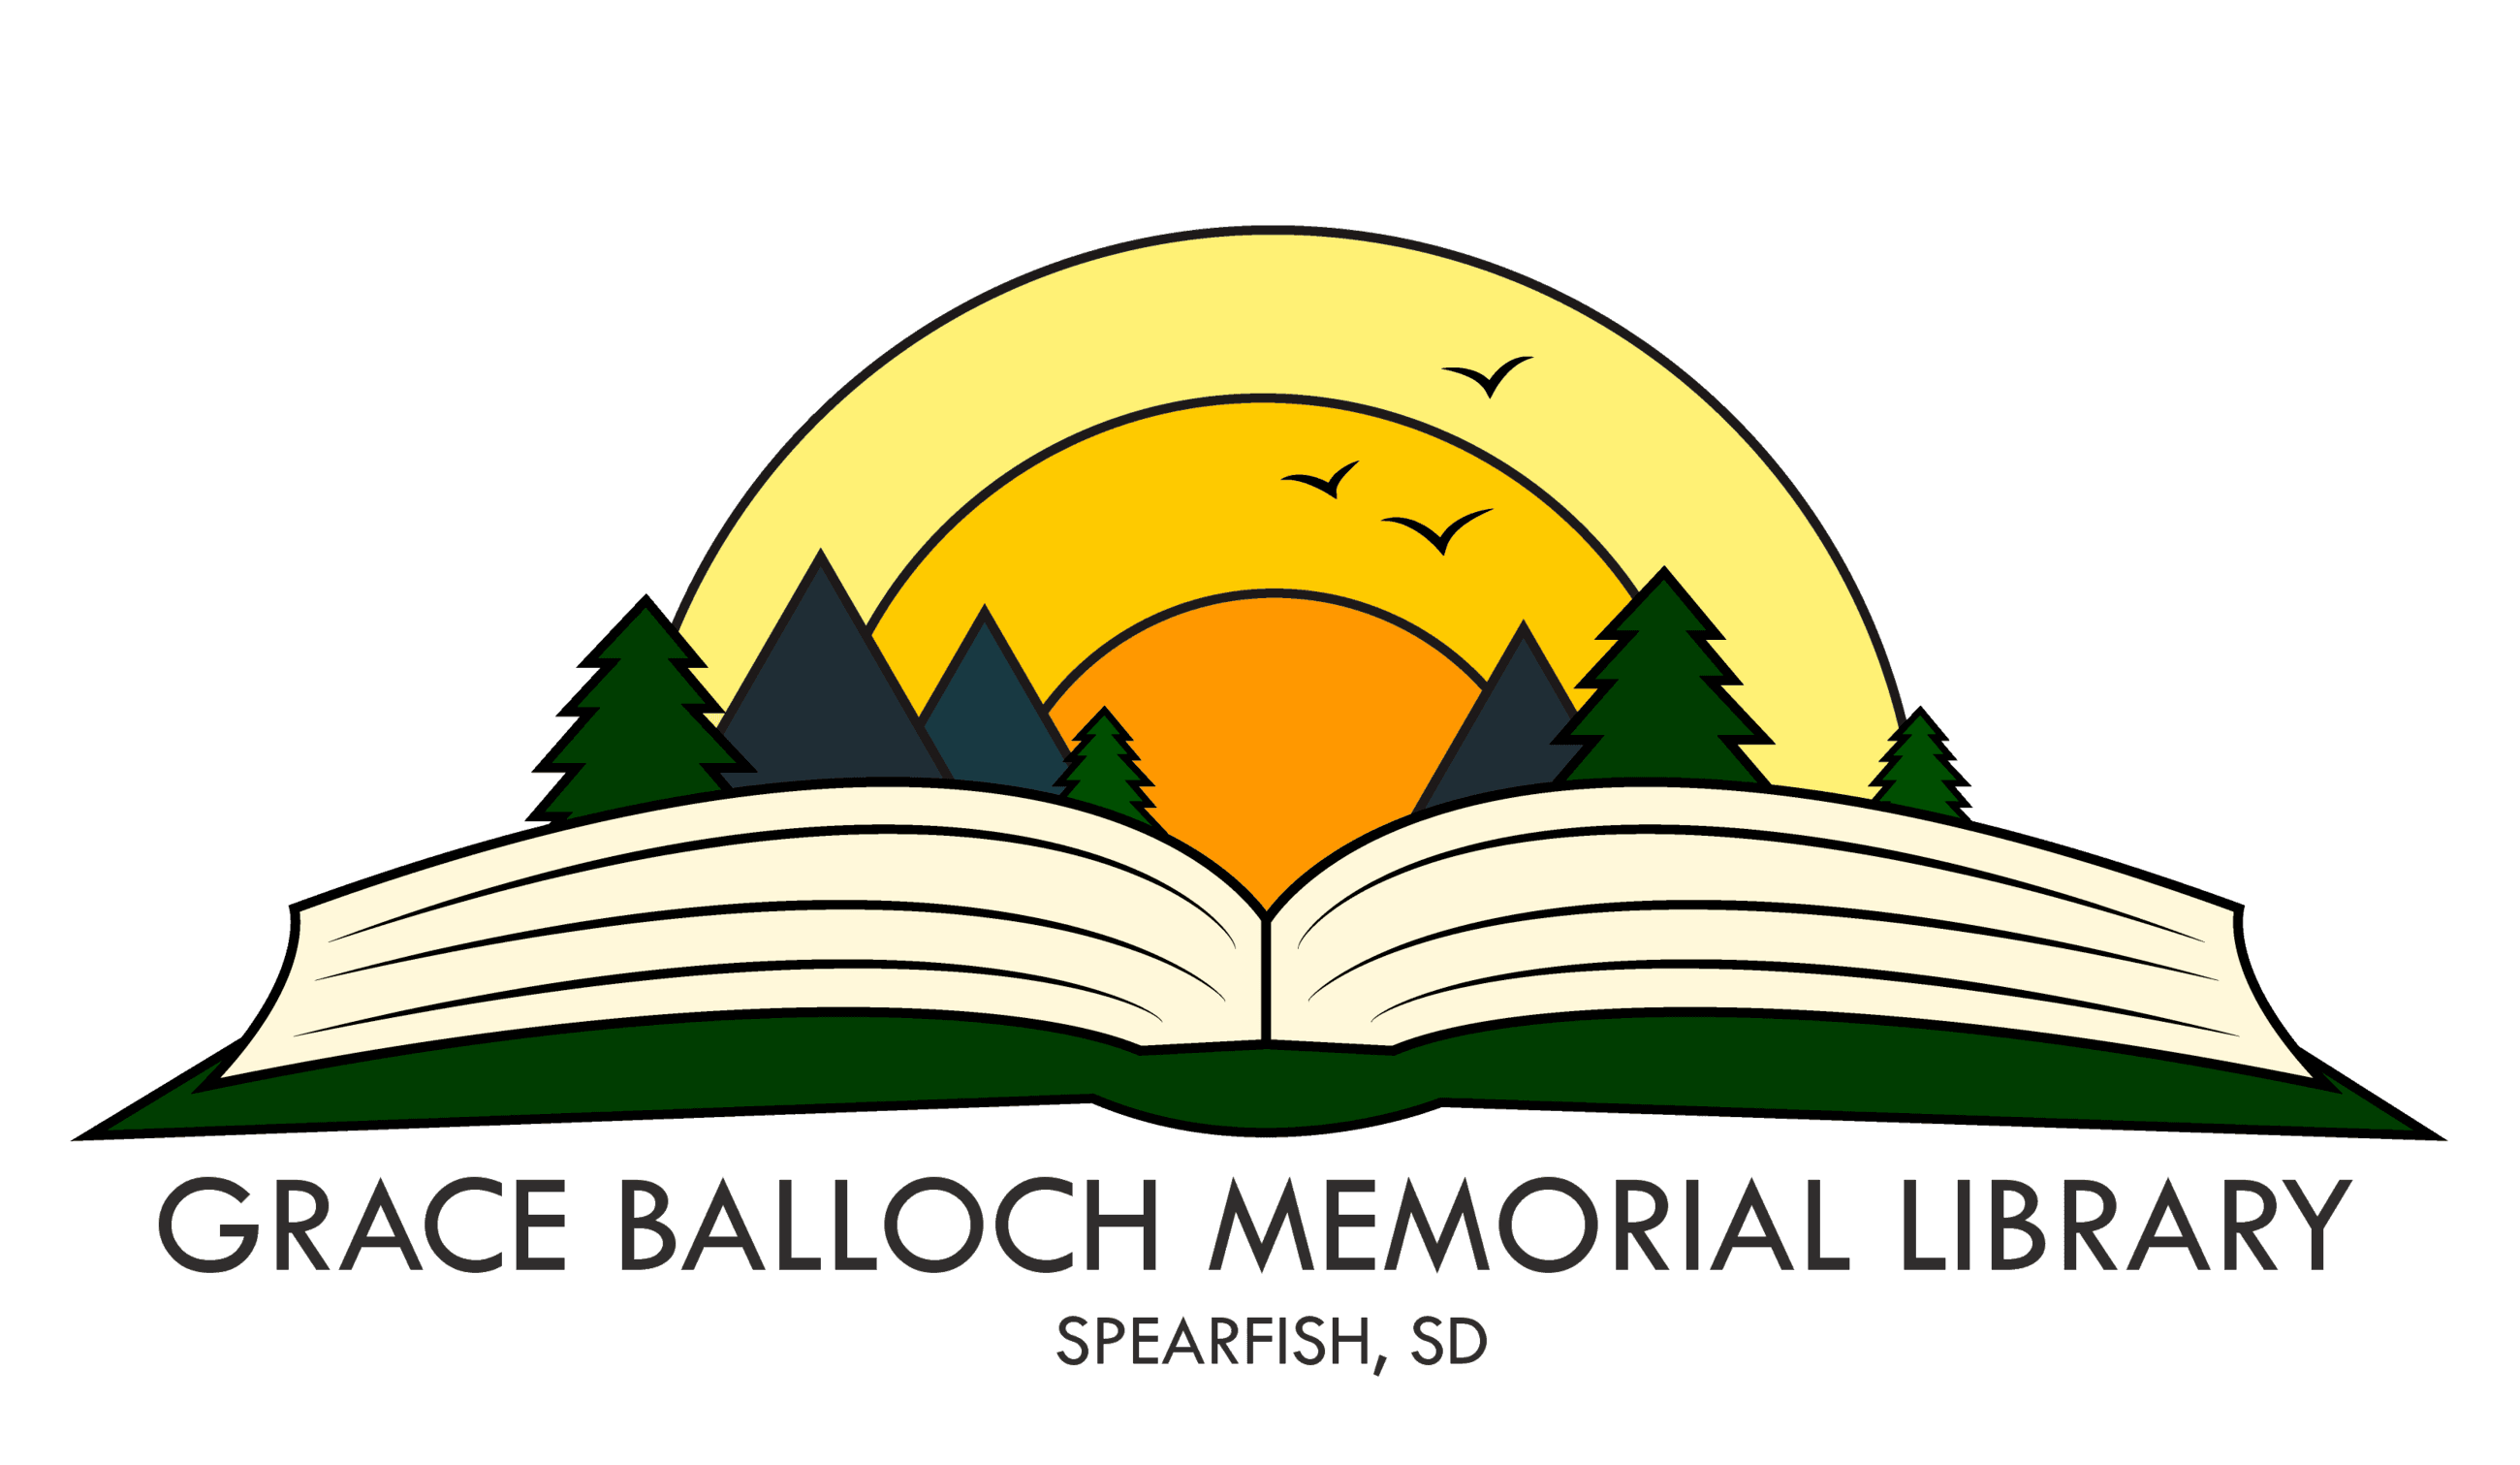 Grace Balloch Memorial Library's official logo